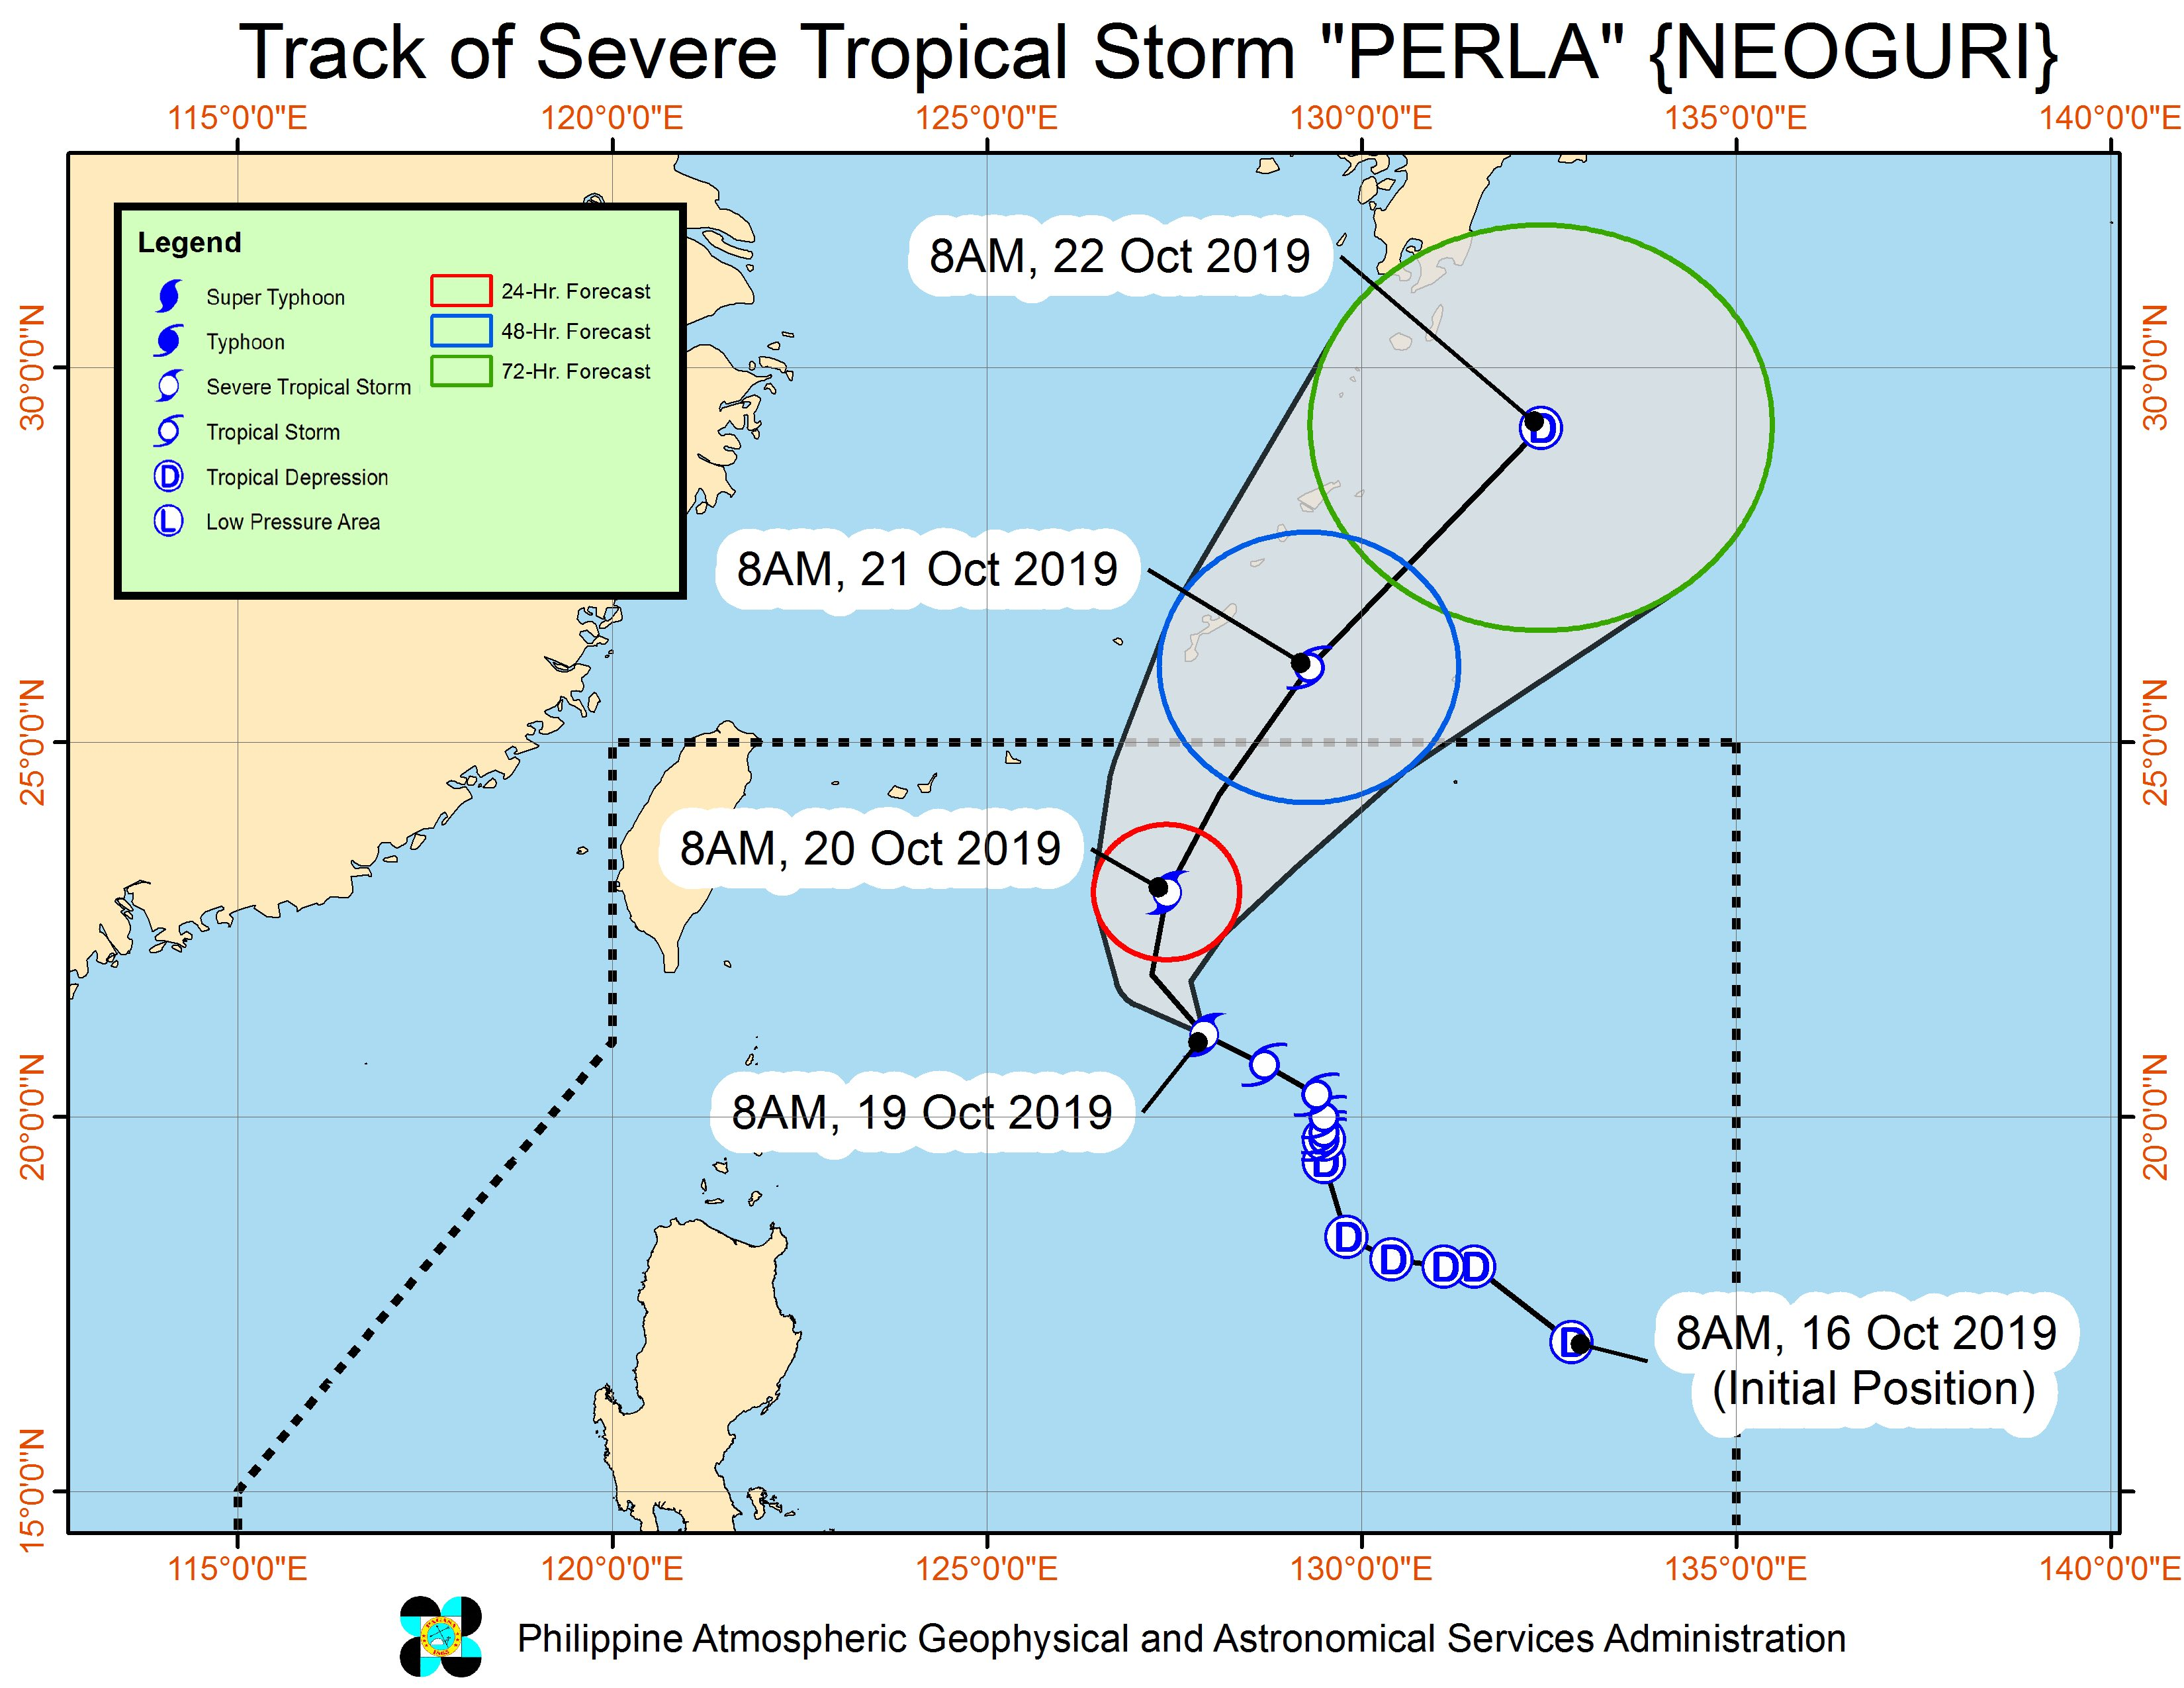 Forecast track of Severe Tropical Storm Perla (Neoguri) as of October 19, 2019, 11 am. Image from PAGASA